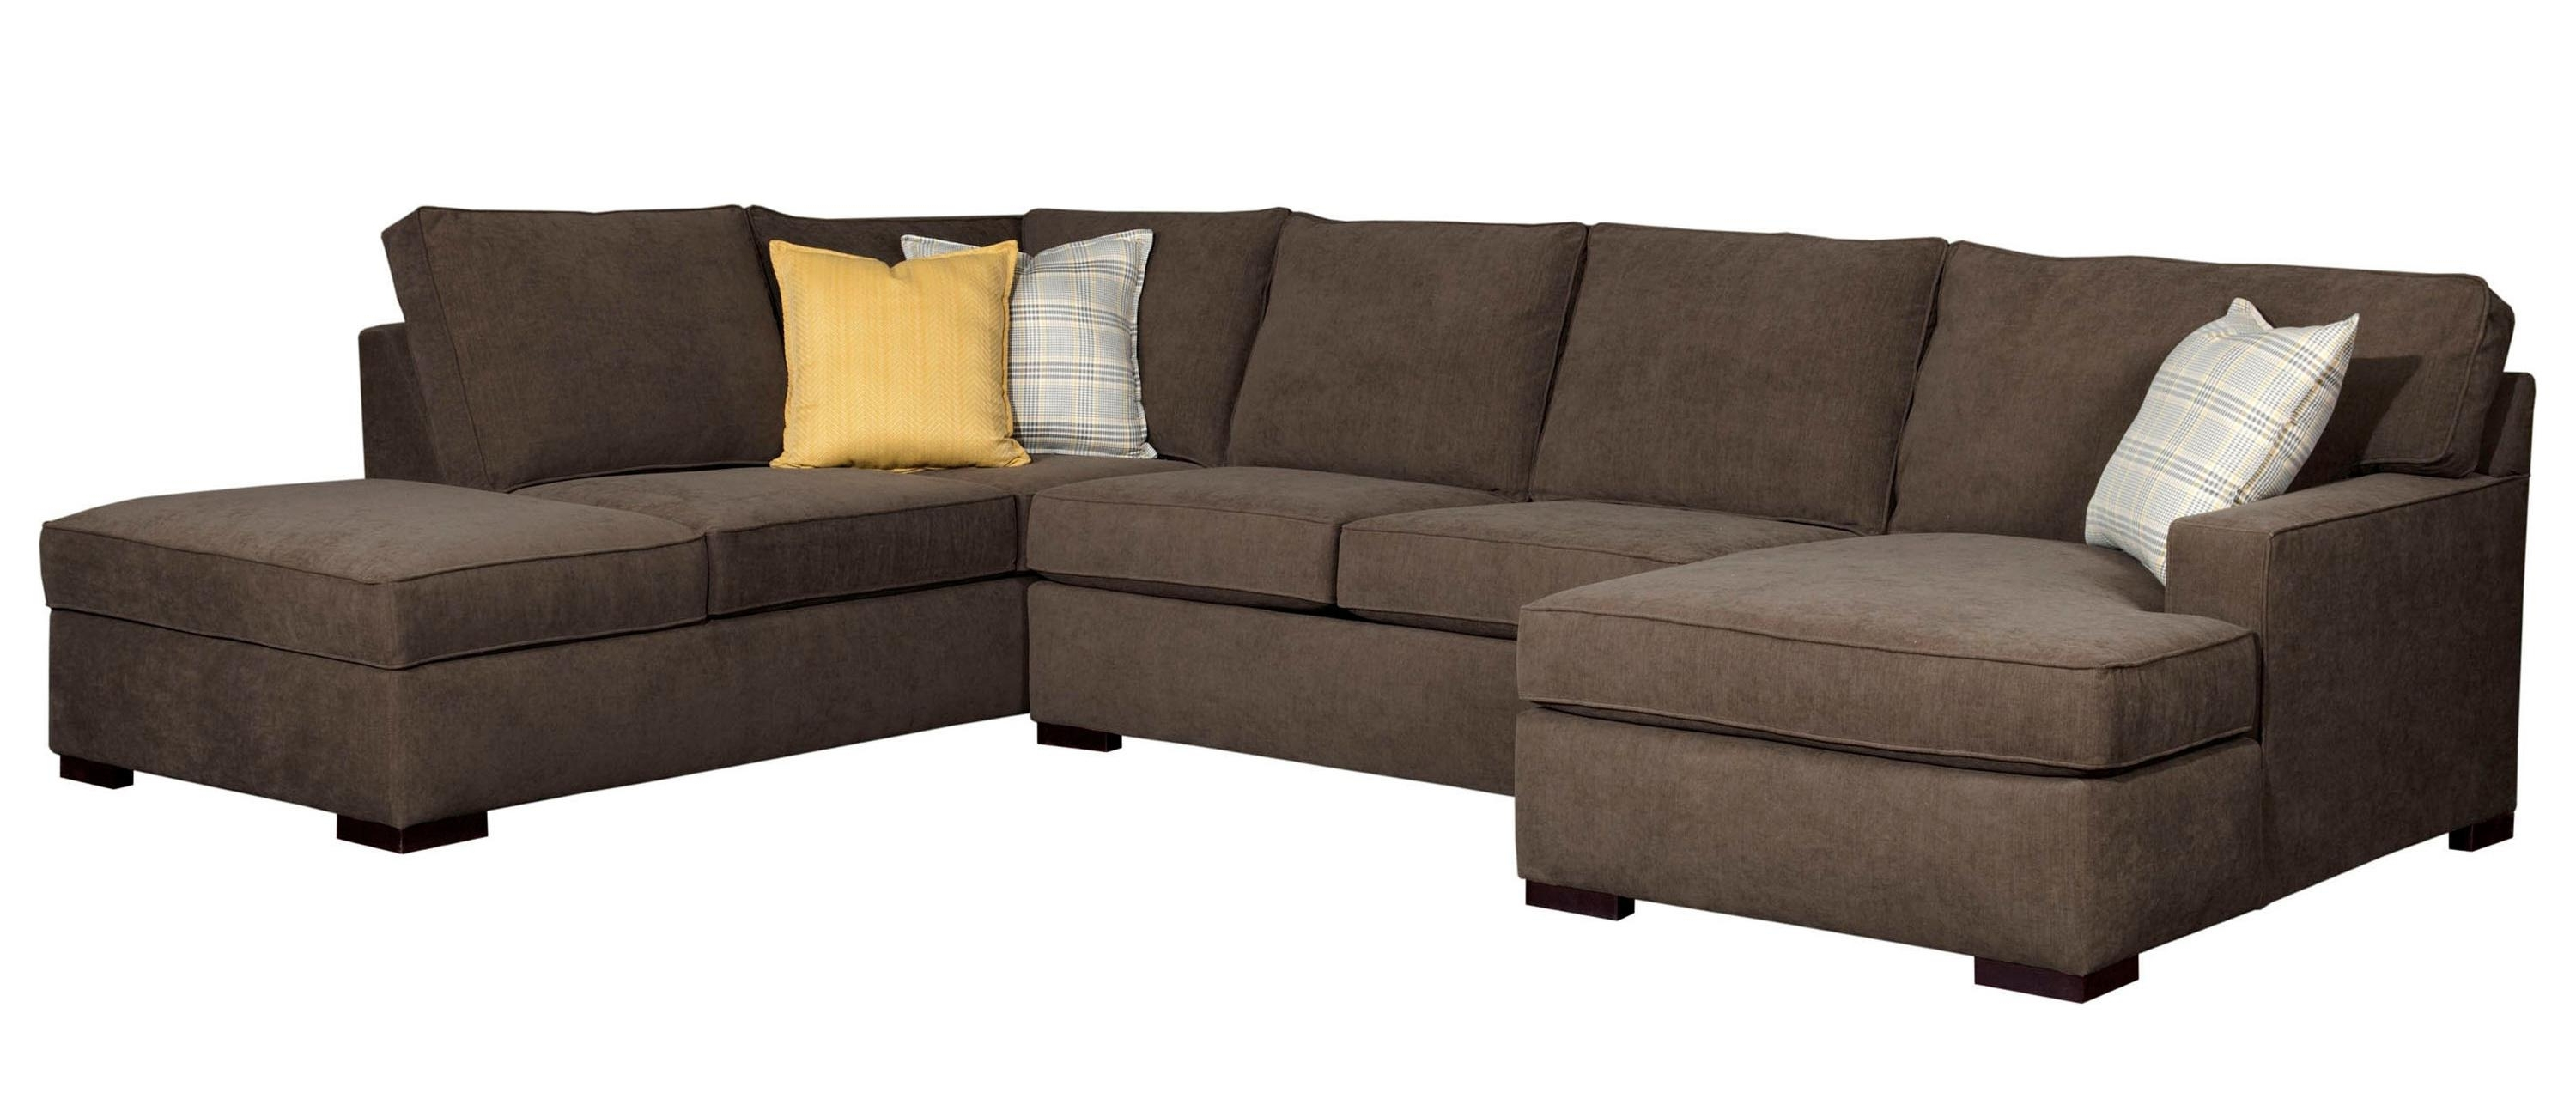 Evansville In Sectional Sofas Pertaining To Well Known Broyhill Furniture Raphael Contemporary Sectional Sofa With Laf (View 9 of 15)